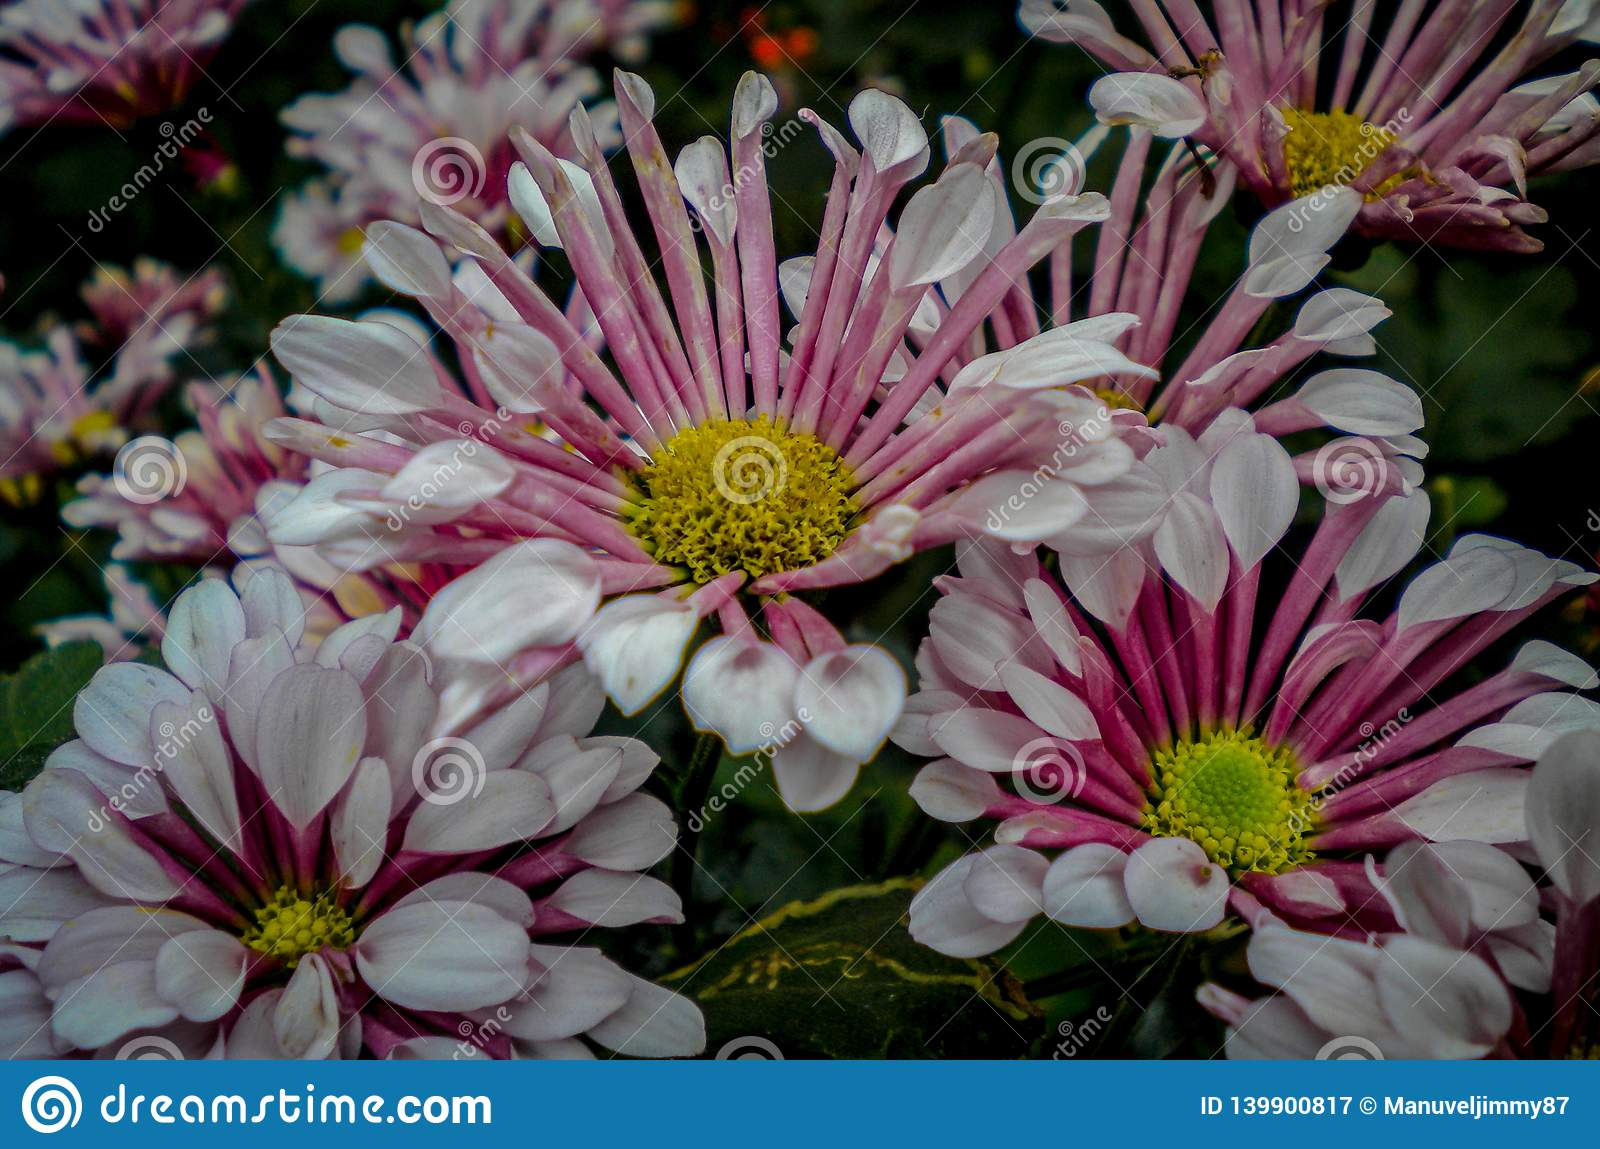 White and pink flowers in the garden in kodaikanal